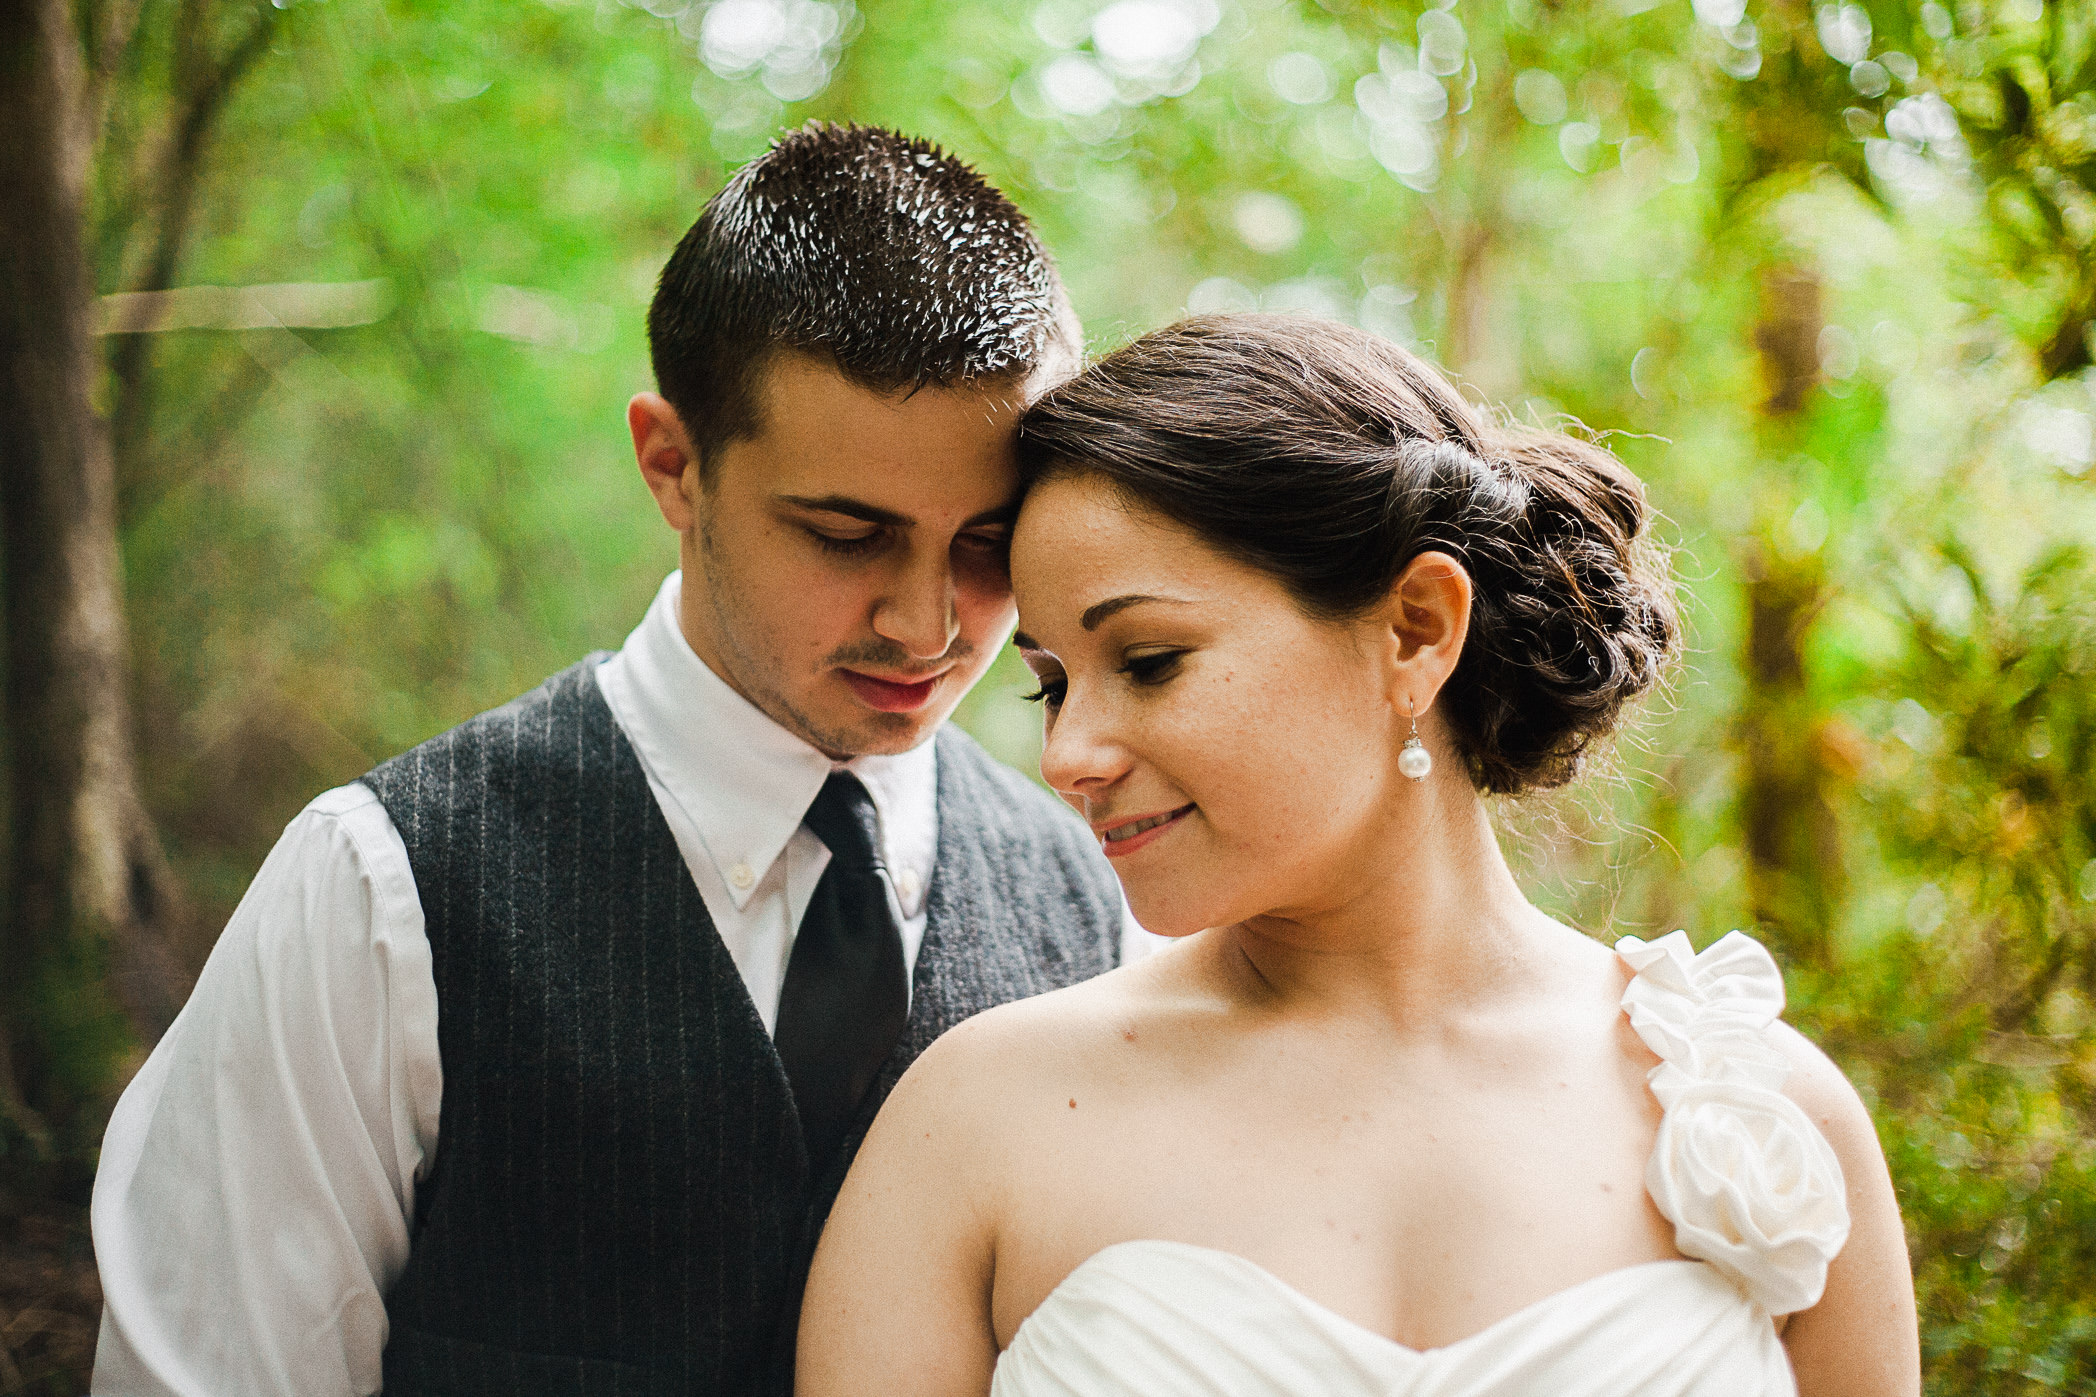 wildcat_falls_wedding (11 of 36).jpg